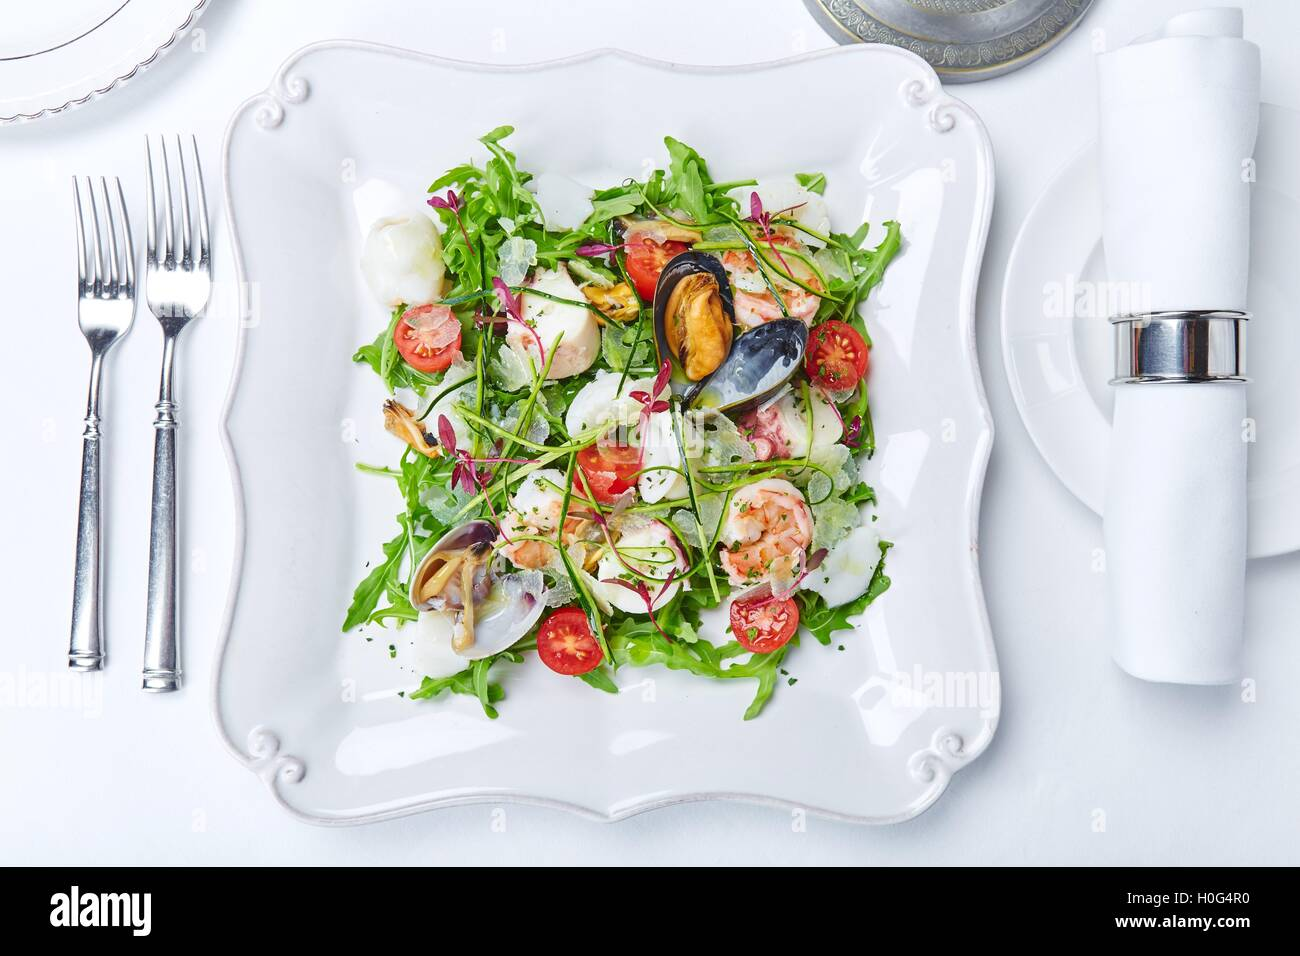 Seafood salad with clams, shrimps, squid, lettuce, tomatoes and herbs on white plate Stock Photo